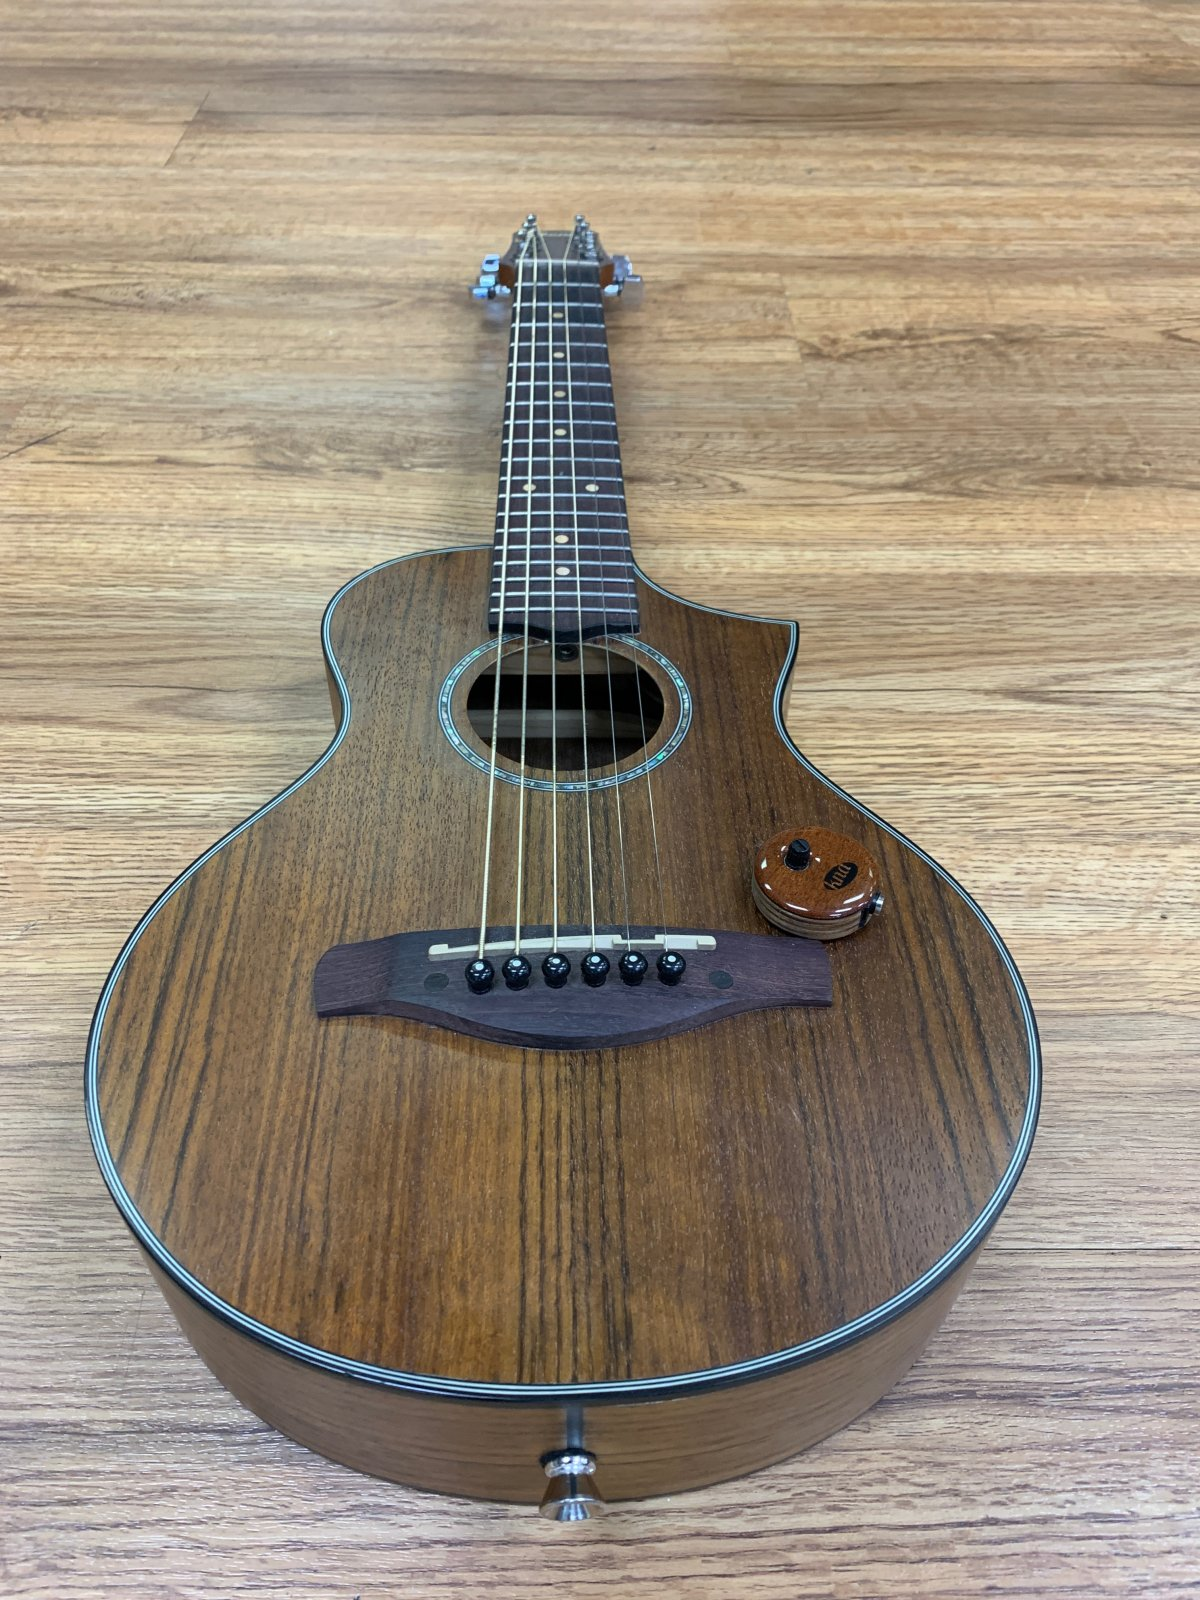 IBANEZ EWP14-0PN EXOTIC WOOD PICCOLO ACOUSTIC GUITAR W/TRANSDUCER PICKUP (USED)